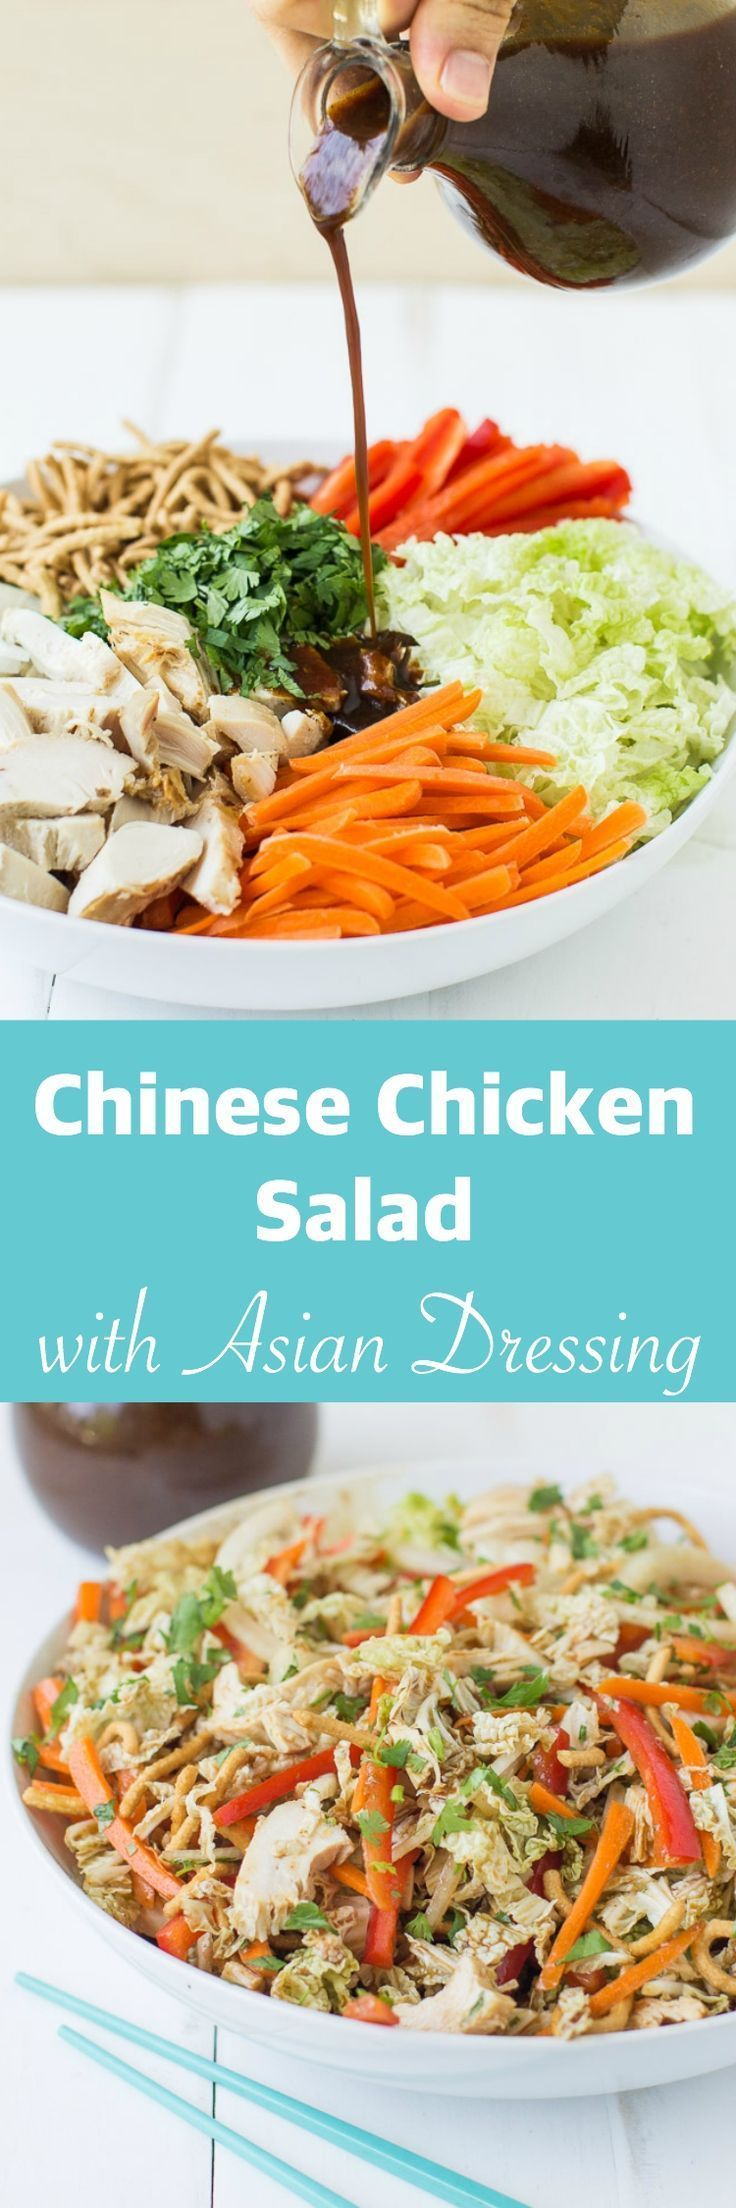 85 best Recipes: Salads images on Pinterest | Cooking food, Tomatoes ...